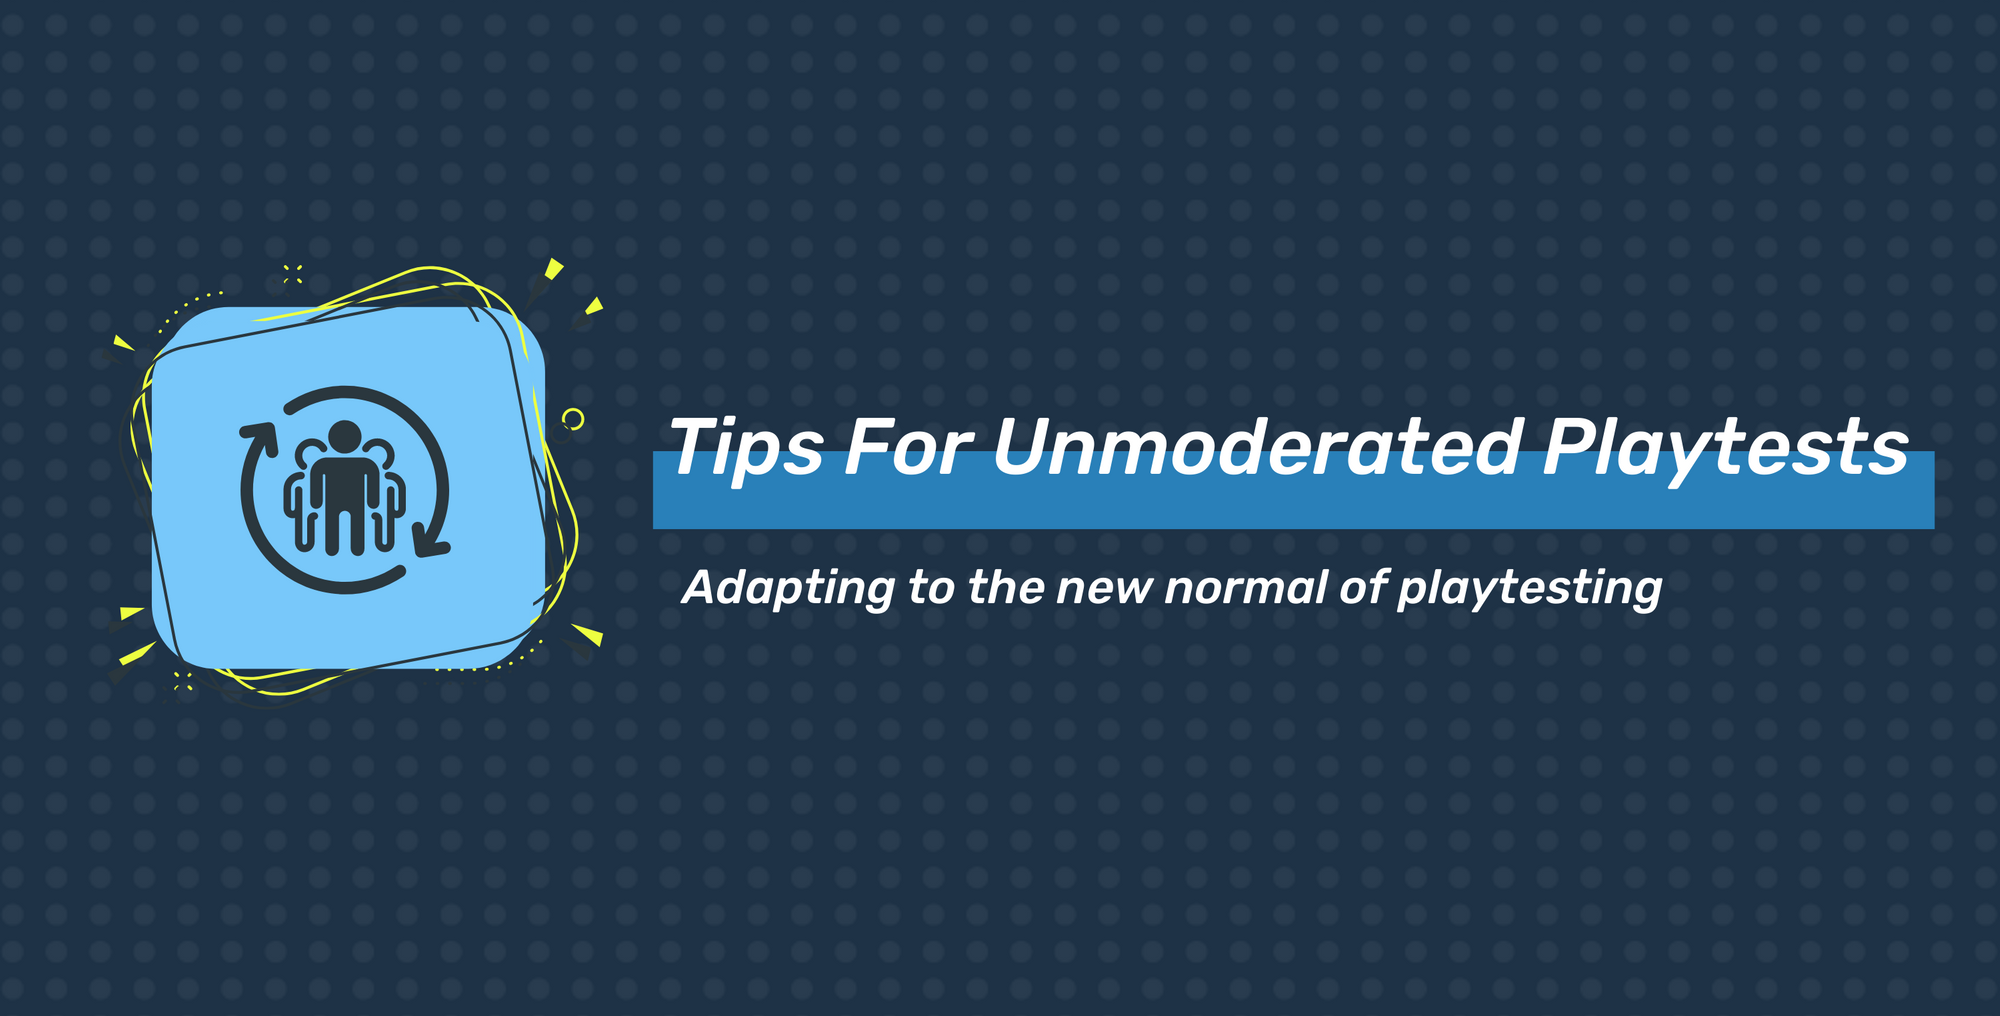 Adapting to the new normal with unmoderated playtests